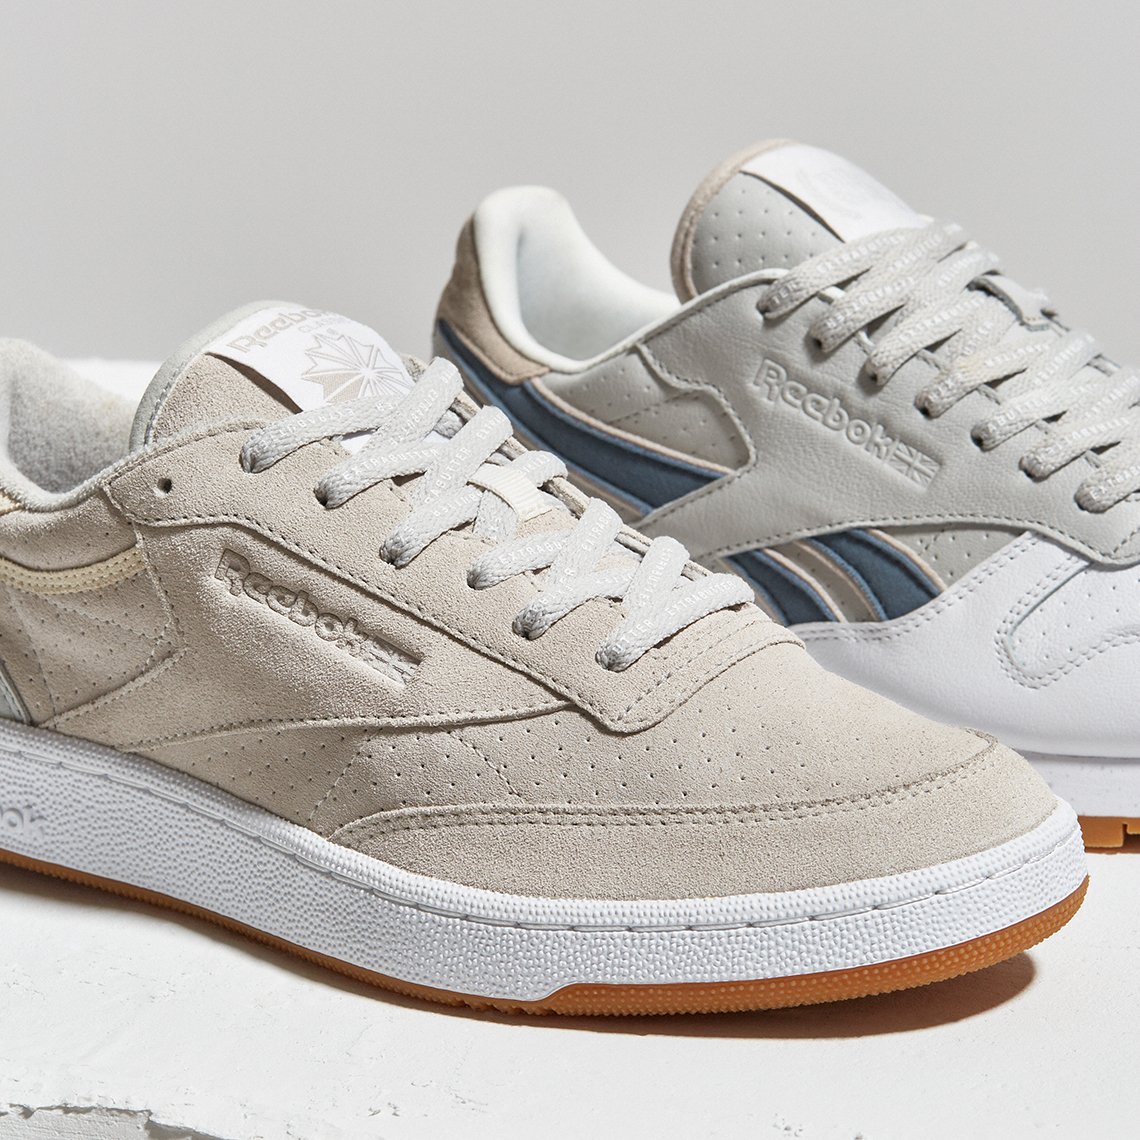 bbeb28a8611 Extra Butter x Reebok Club C + Classic Leather for Urabn Outfitters ...